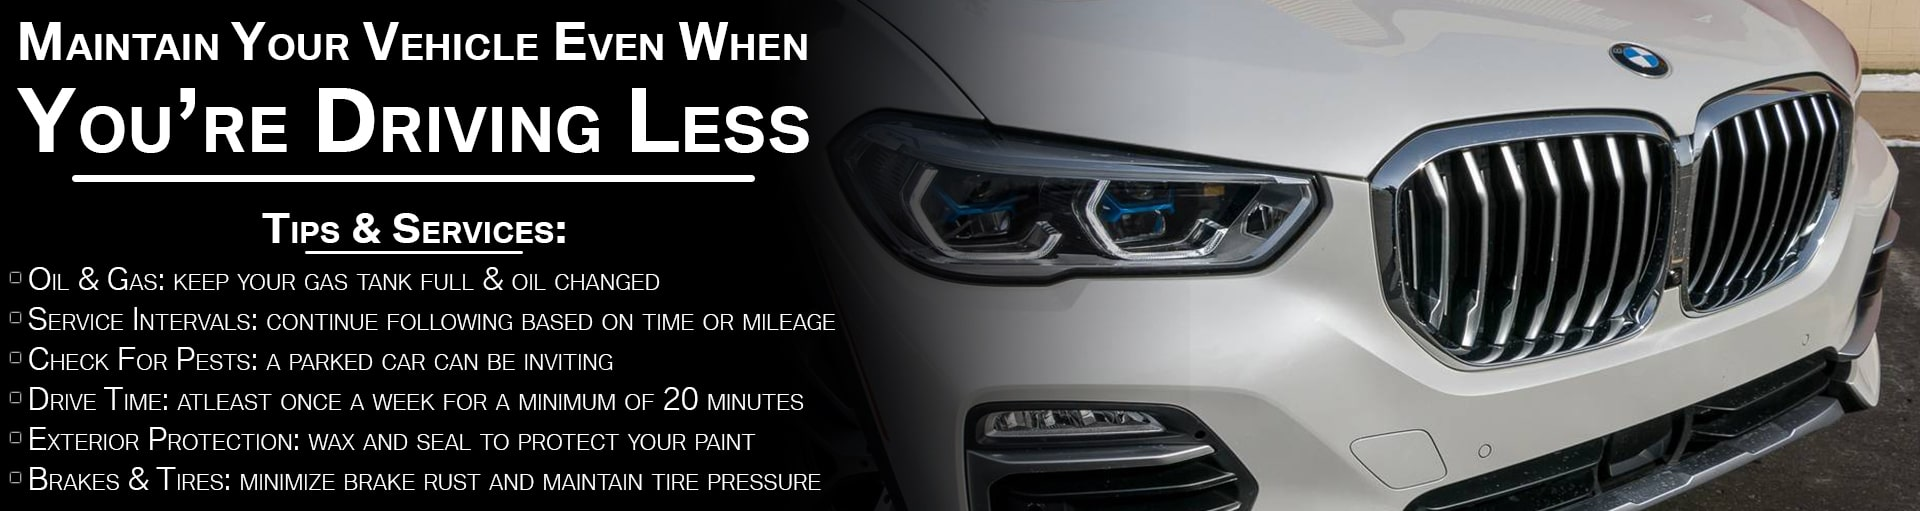 BMW Driving Less Maintenance Banner